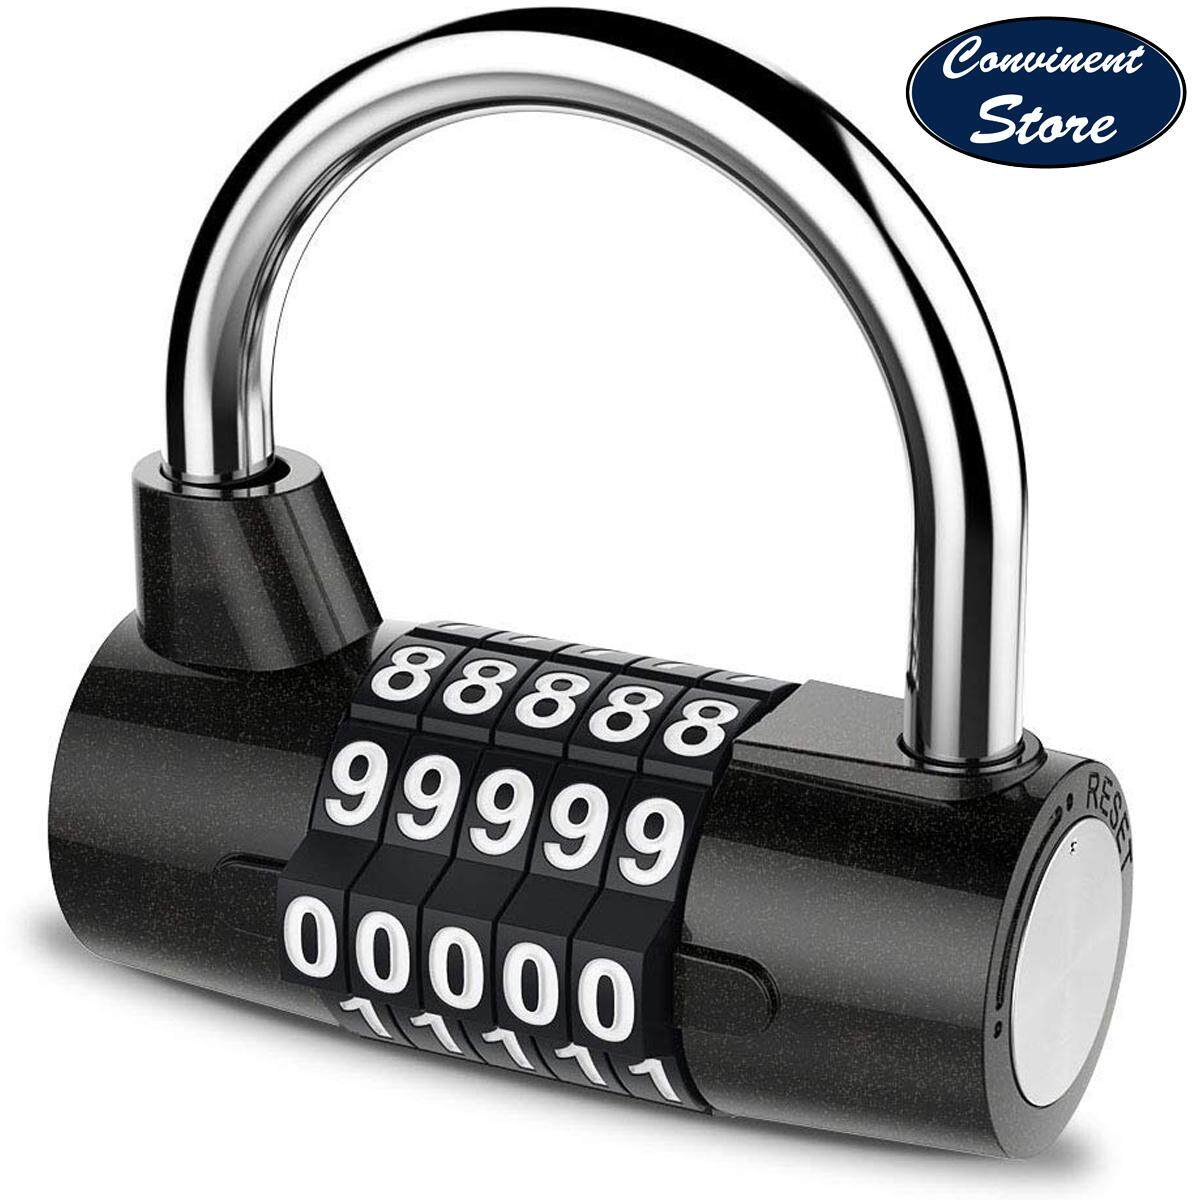 5704881796e3 ✅【5 Digit】 Combination Lock Padlock Set Waterproof Antirust Resettable for  Outdoor Gym School Office Home Bicycle Suitcase Luggage Backpack Storage ...